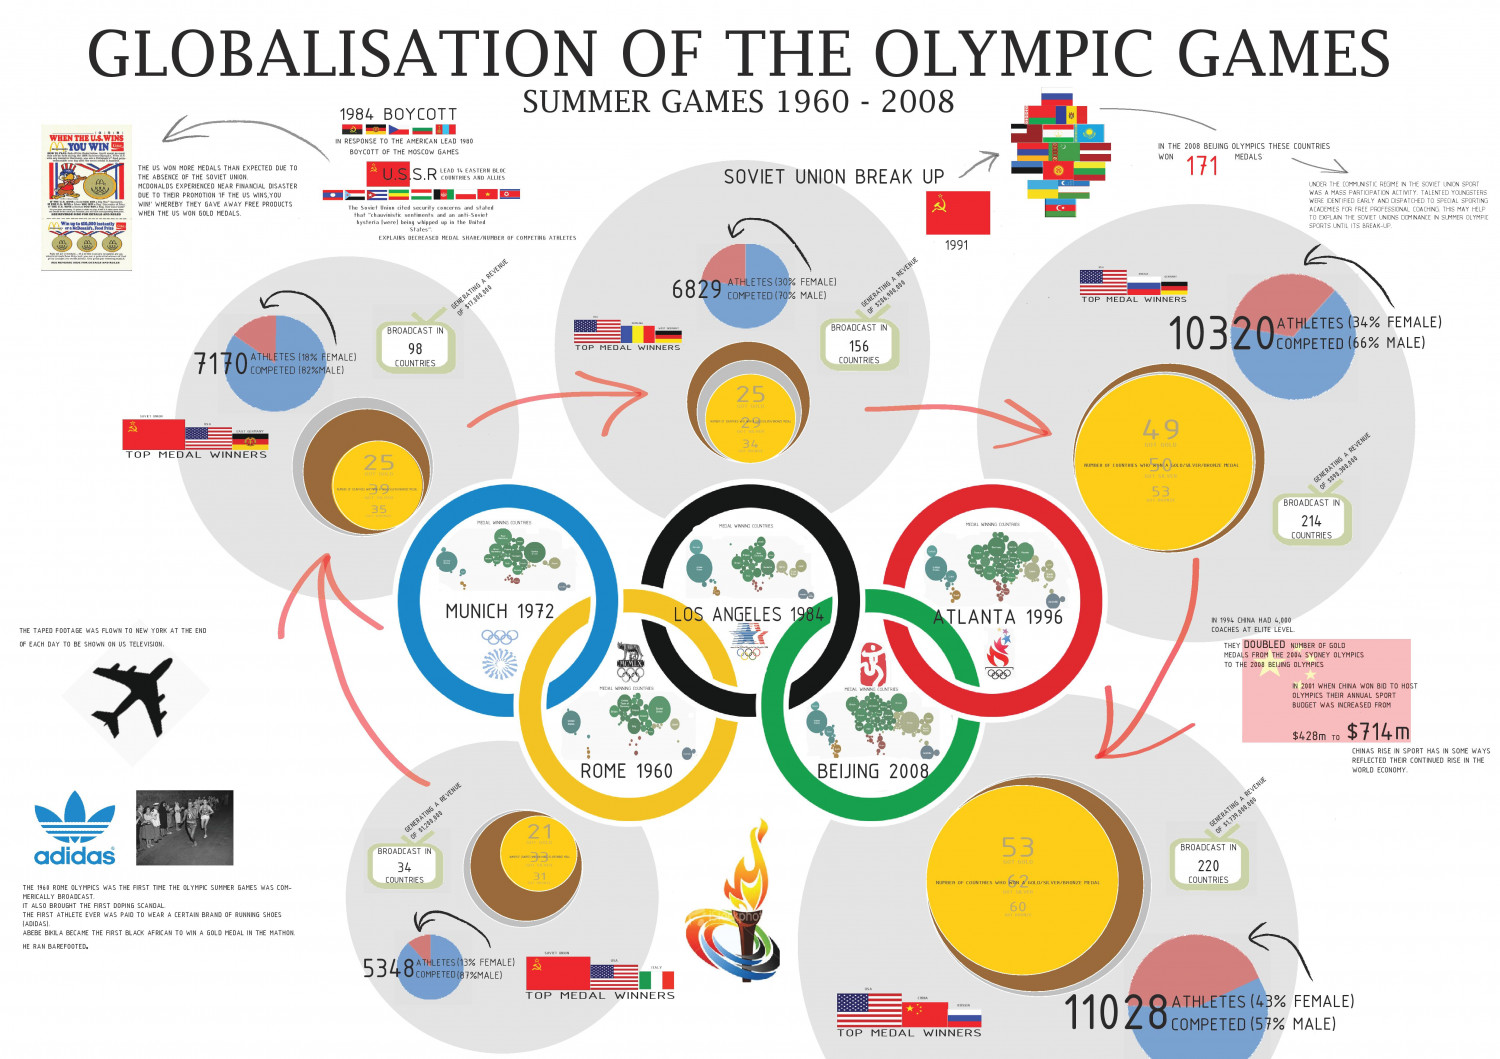 The globalisation of sport by international